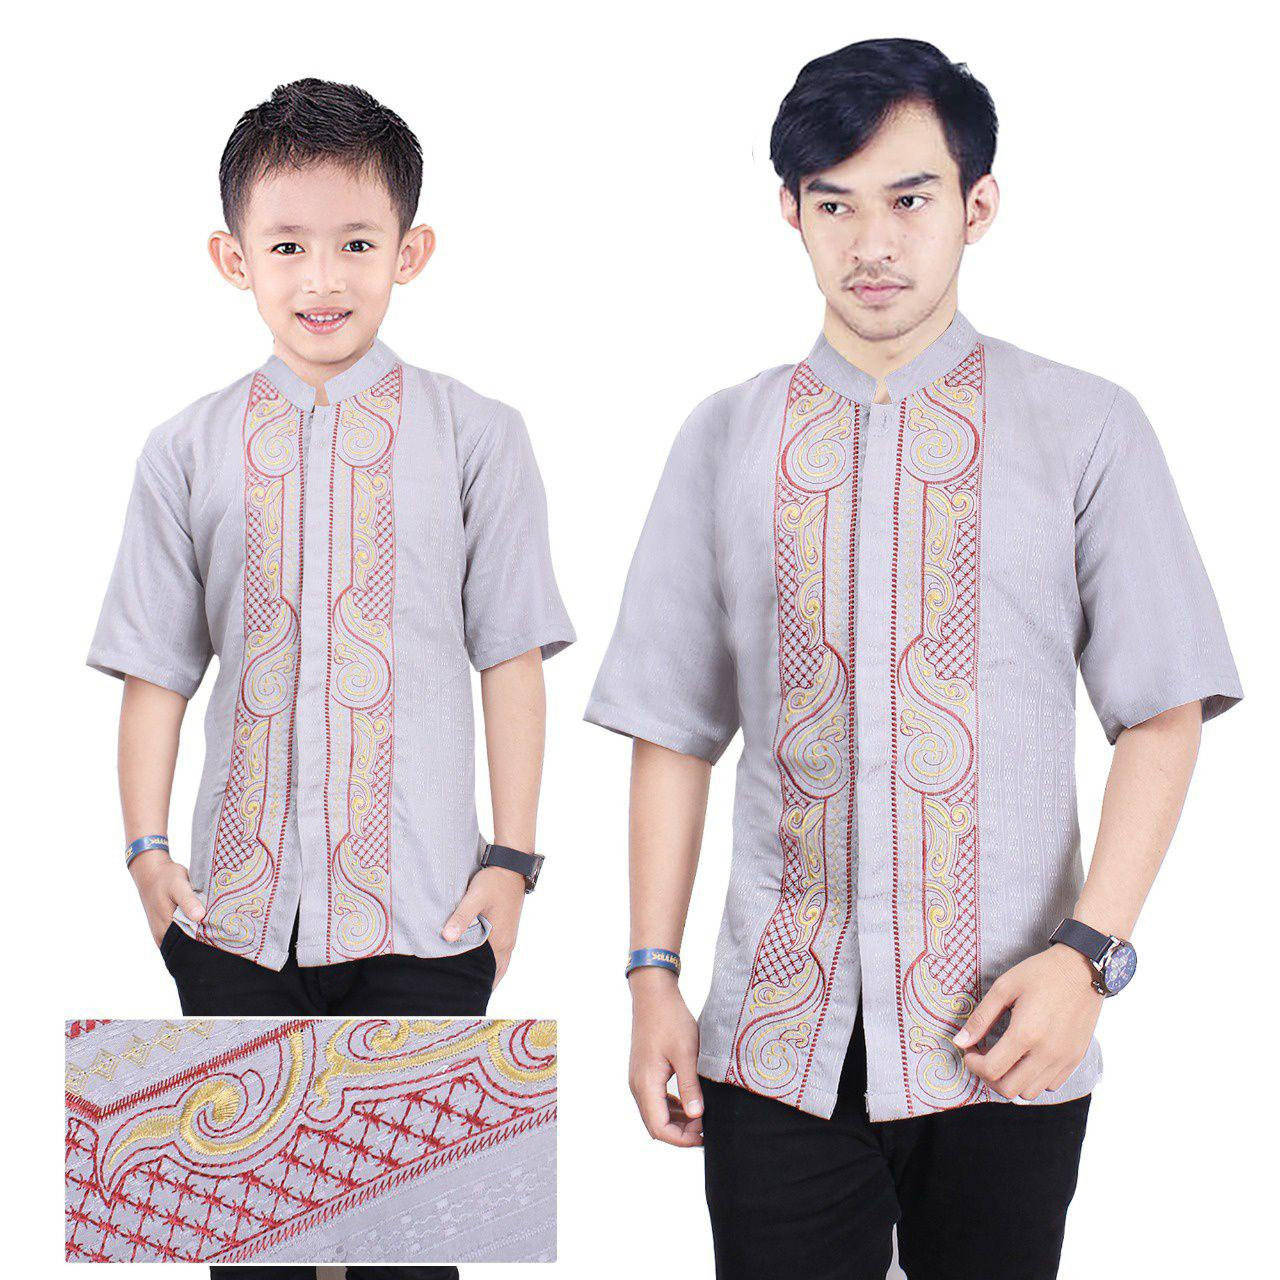 Couple atasan baju koko ayah dan anak 08,tannisa collection